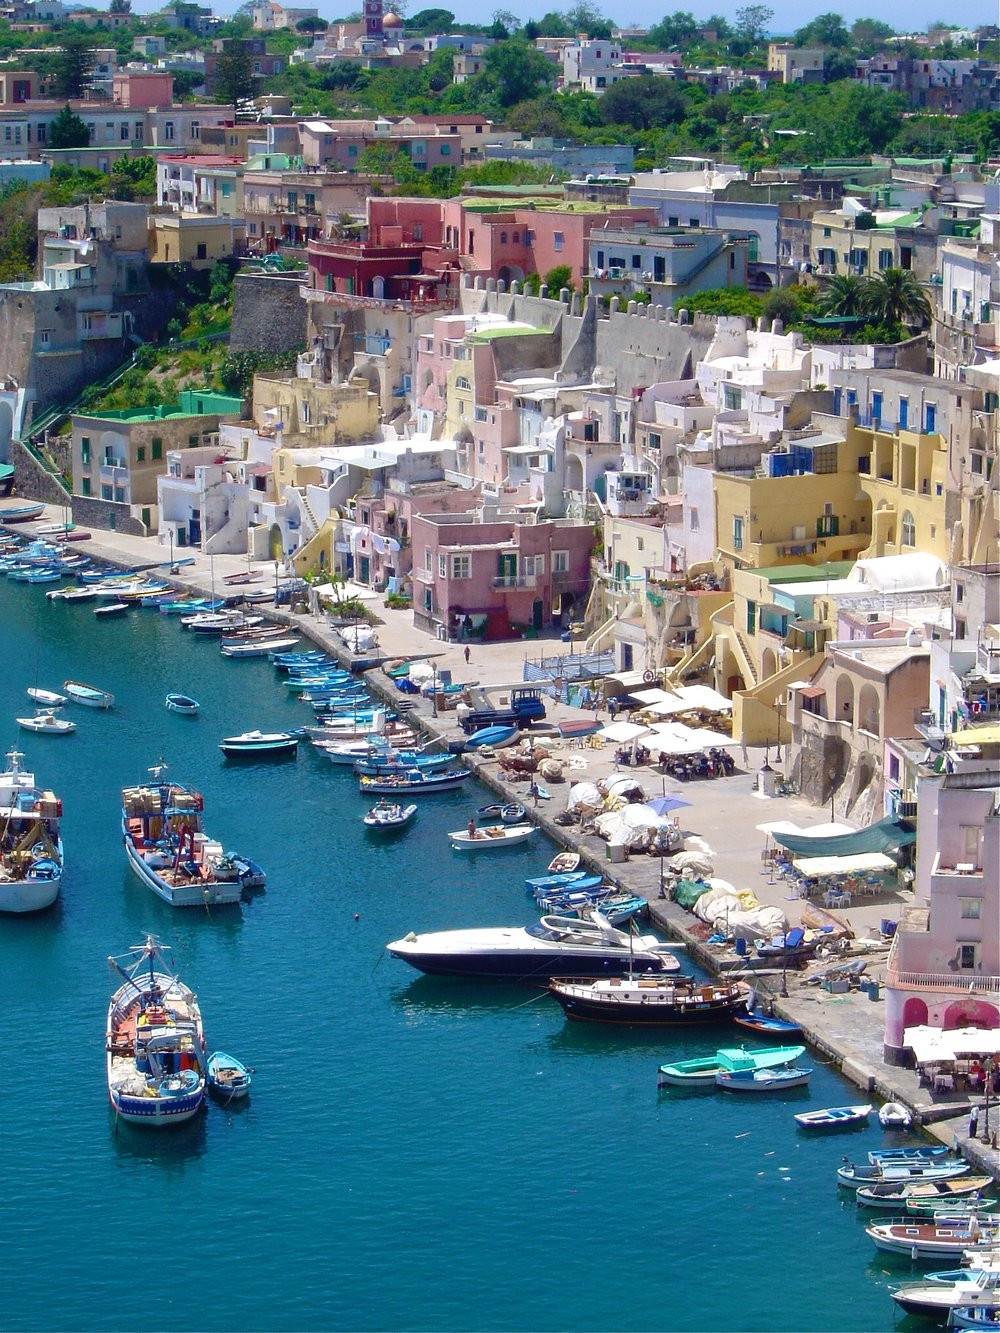 Must-Visit Destination: Explore The Island of Procida in Italy